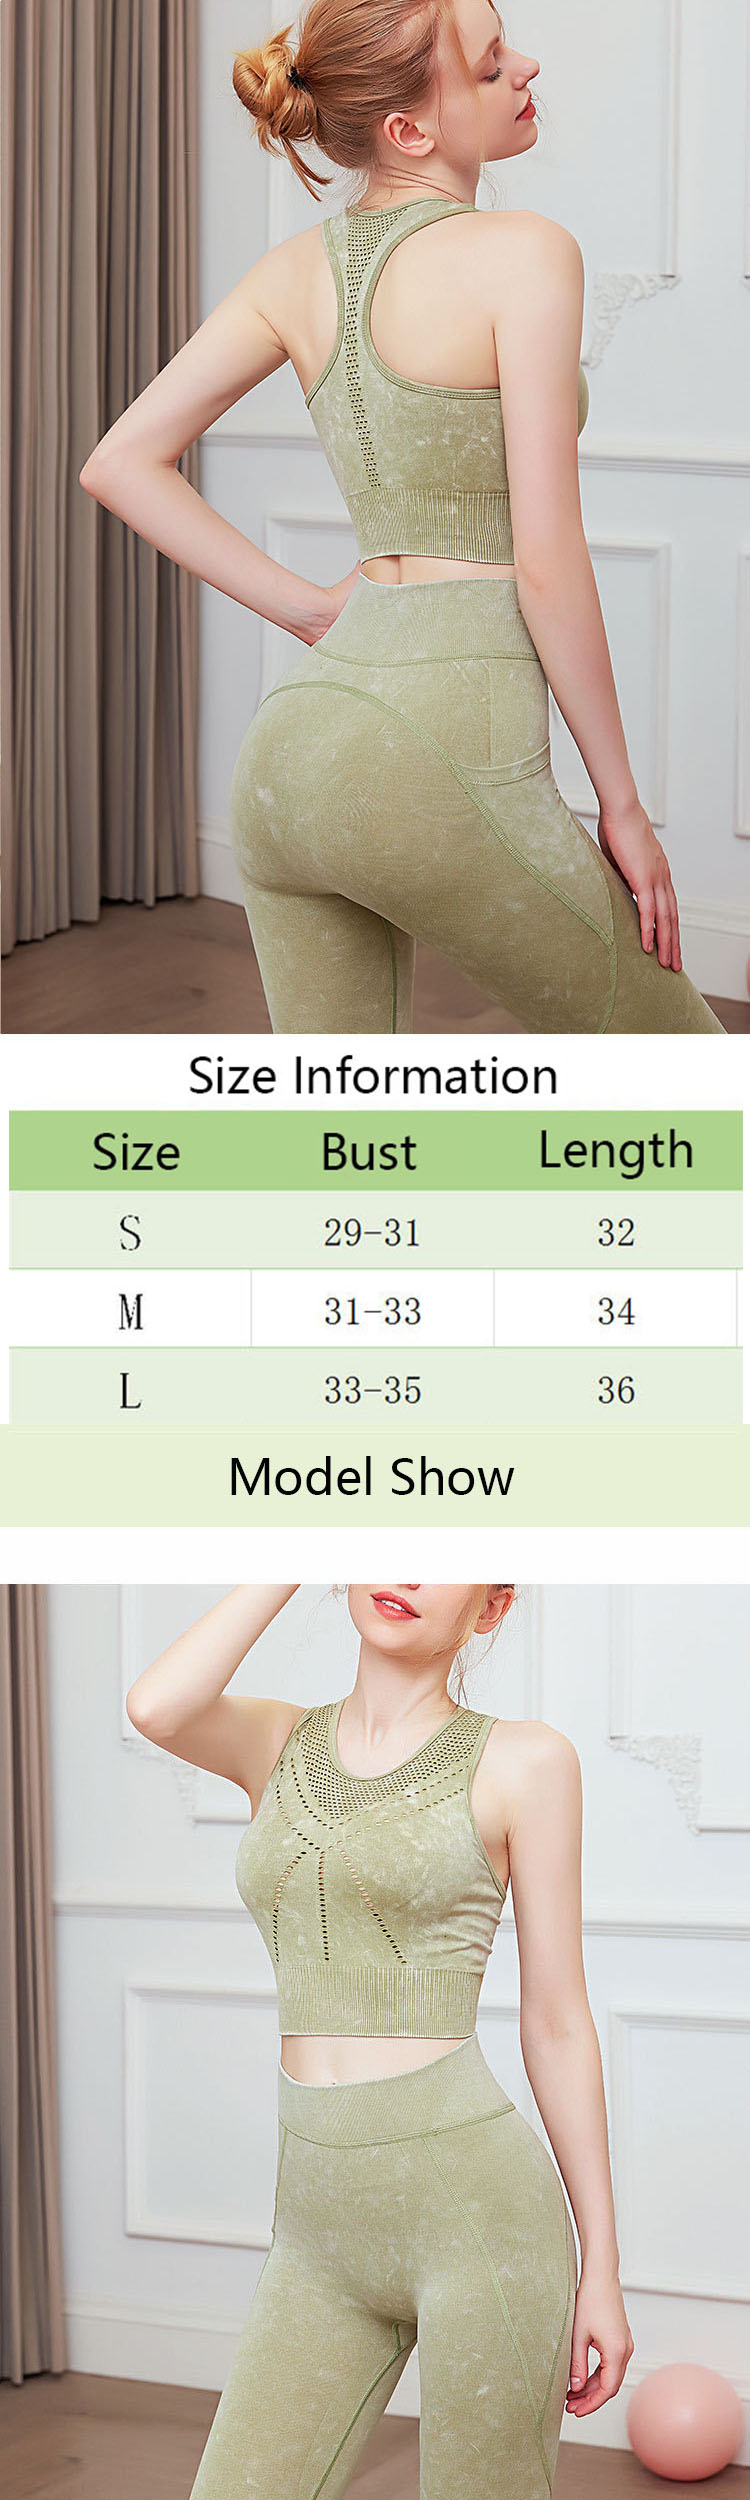 Hollowing in best high support sports bra is more for better perspiration and ventilation